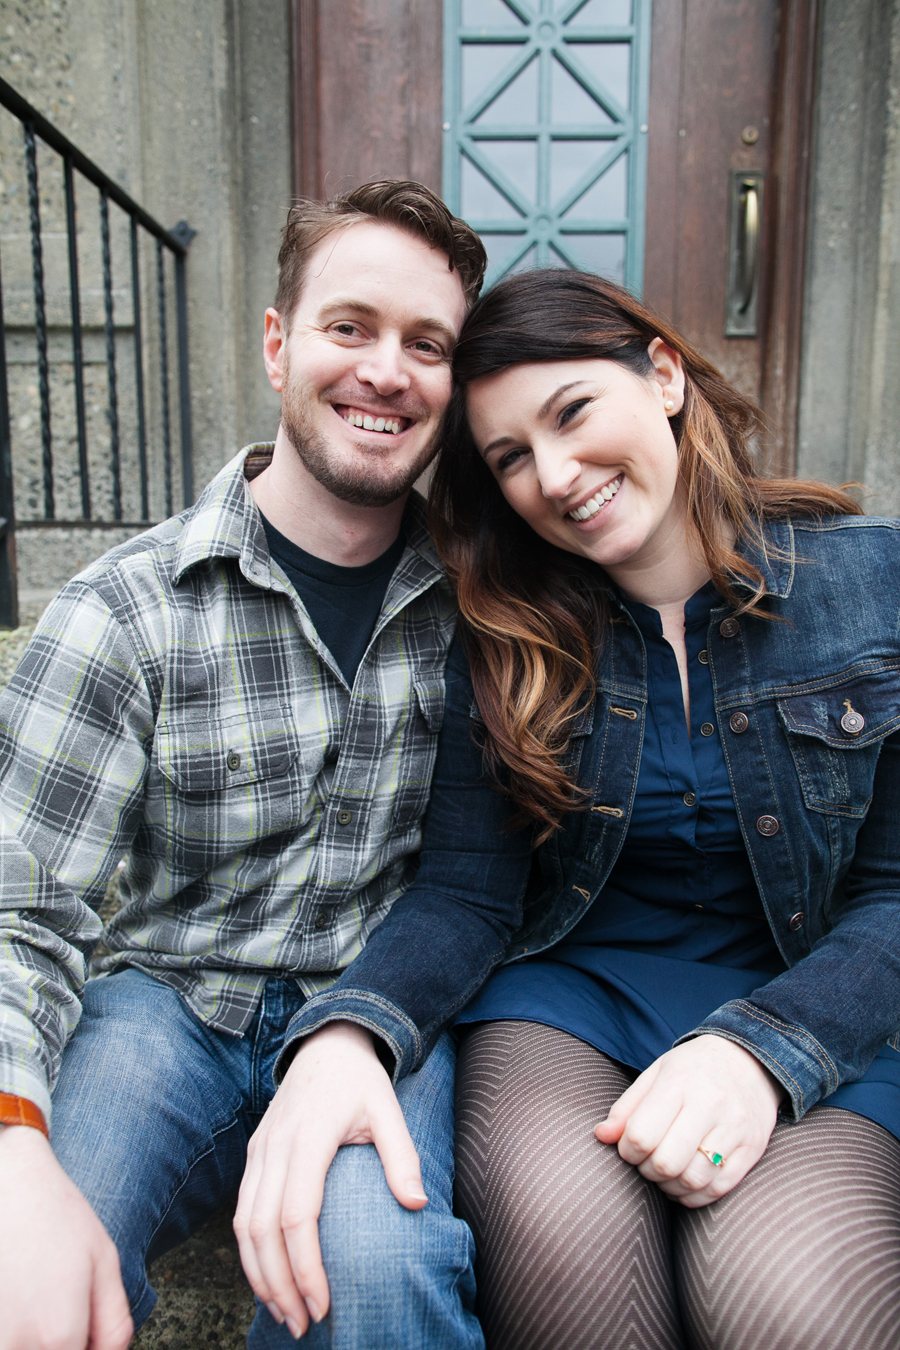 012-ballard-locks-seattle-botanical-garden-engagement-session.jpg